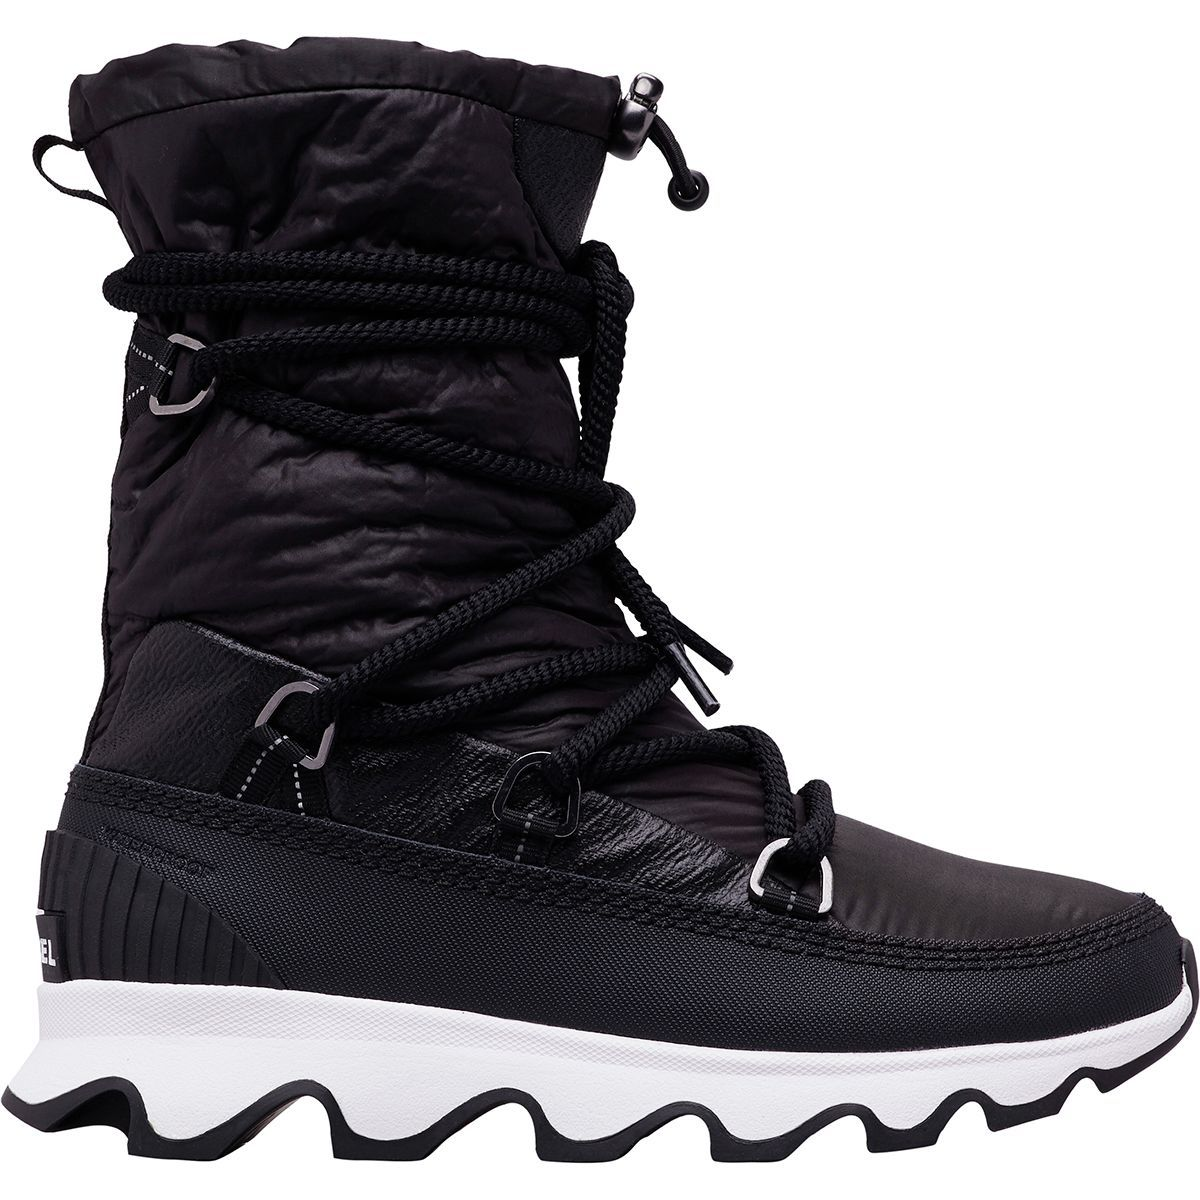 Kinetic Boot - Women's #womenswinterfashion